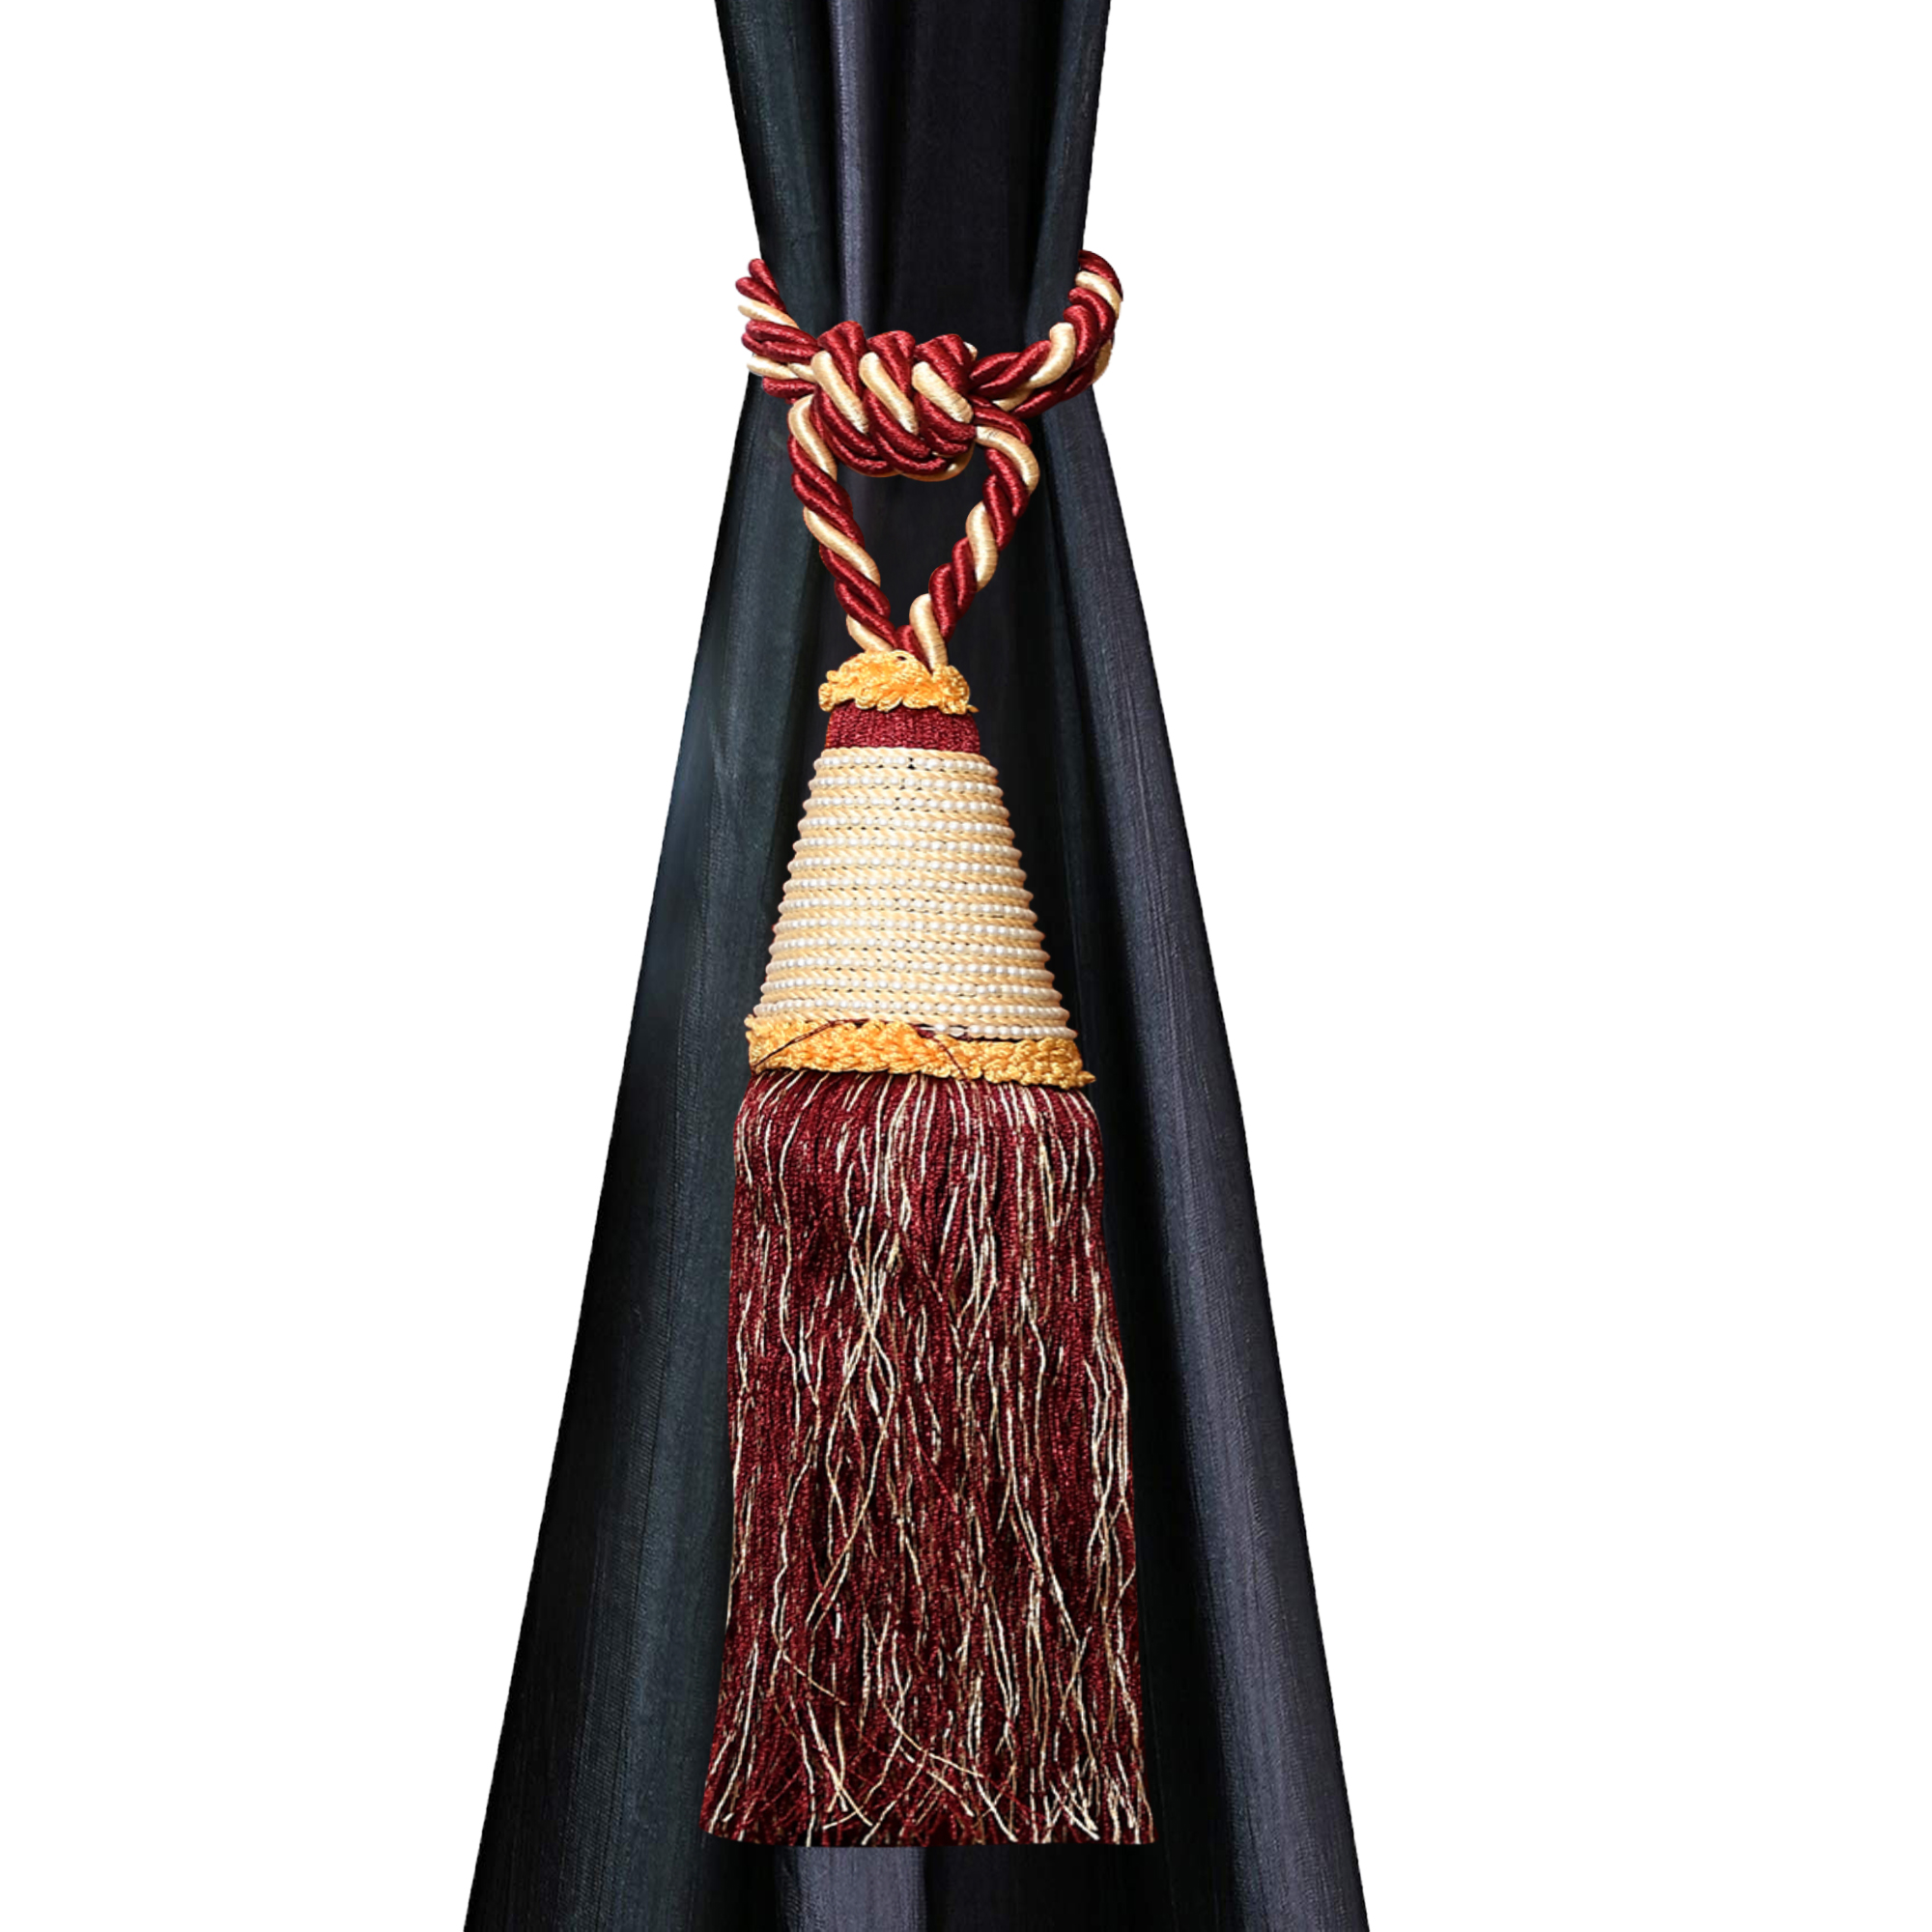 Kuber Industries Beads Beautiful Design Polyester 12 Pieces Curtain Tie Back Tassel Set (Maroon)